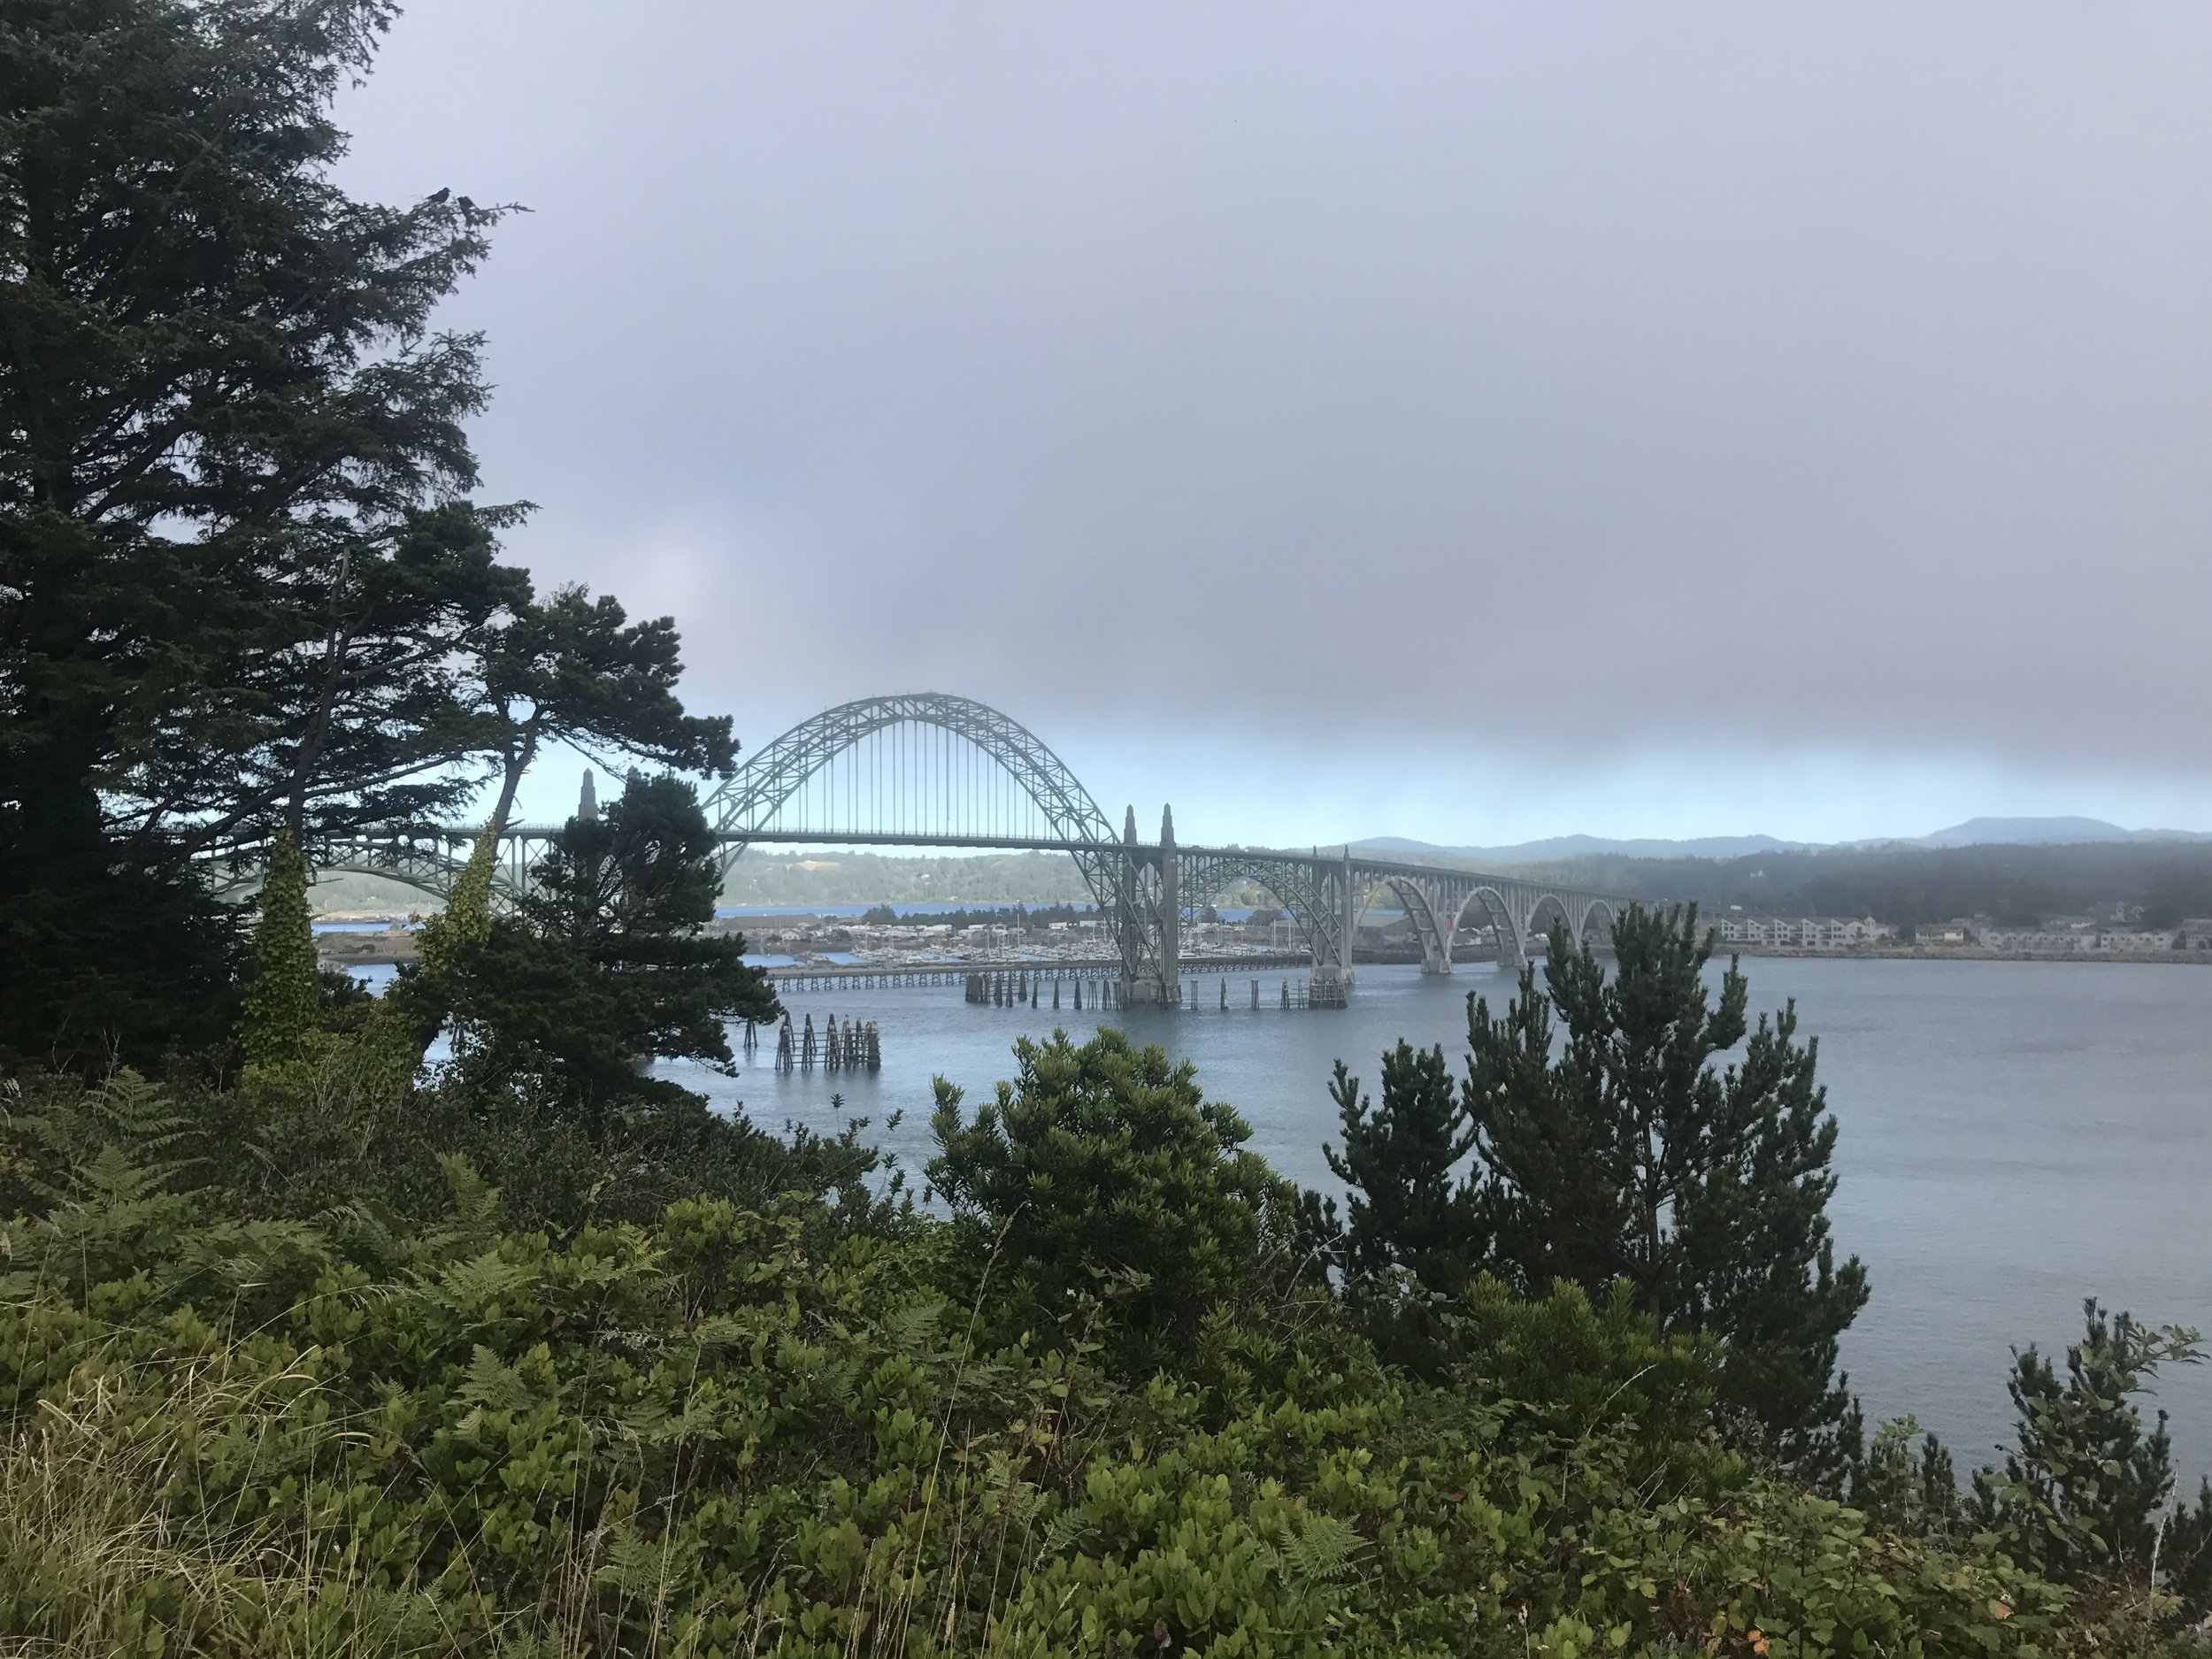 Morning run views of the Newport Bridge